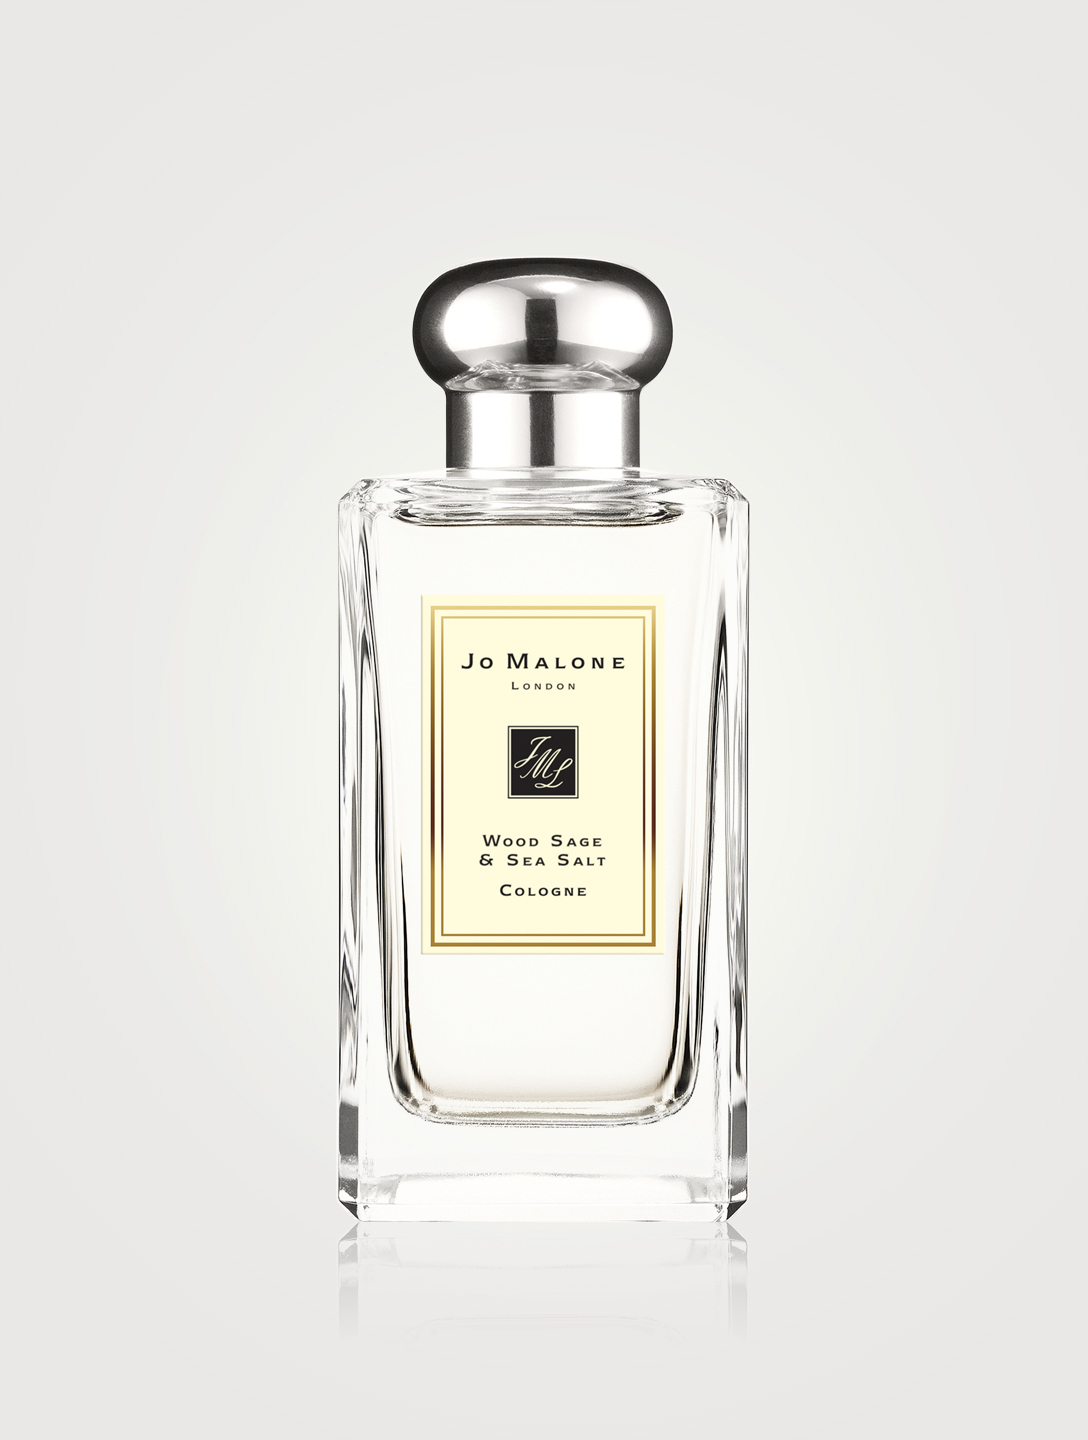 JO MALONE LONDON Wood Sage & Sea Salt Cologne Collections